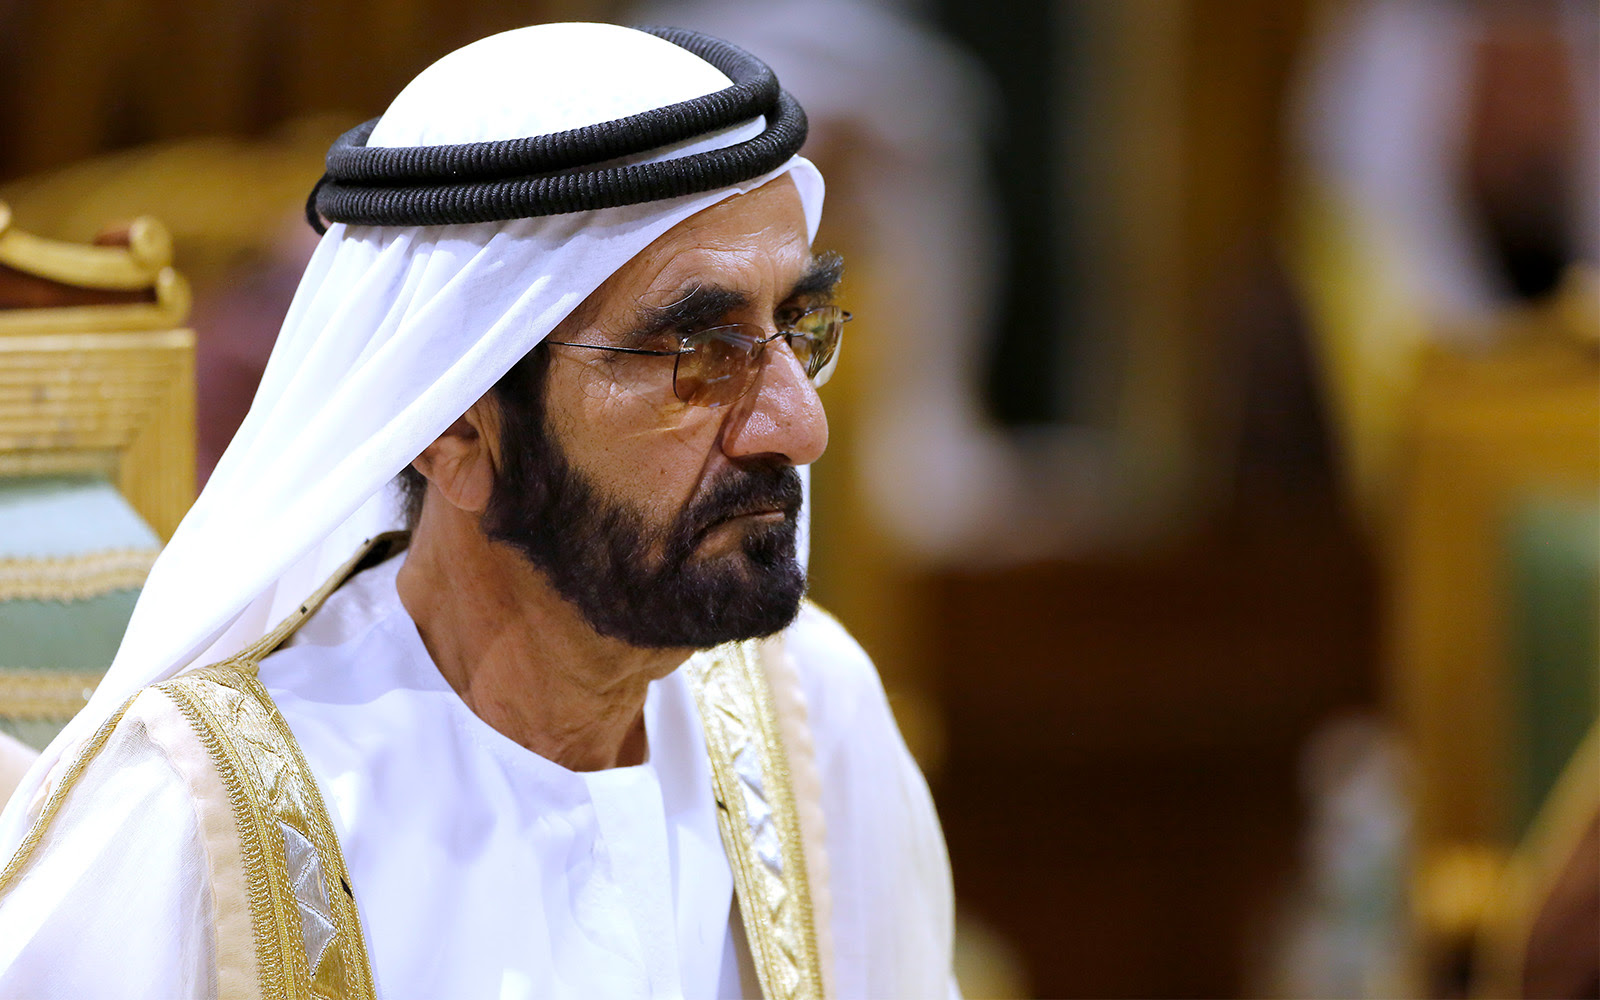 UAE said linked to listing of 400 UK phone numbers as targets for NSO spyware